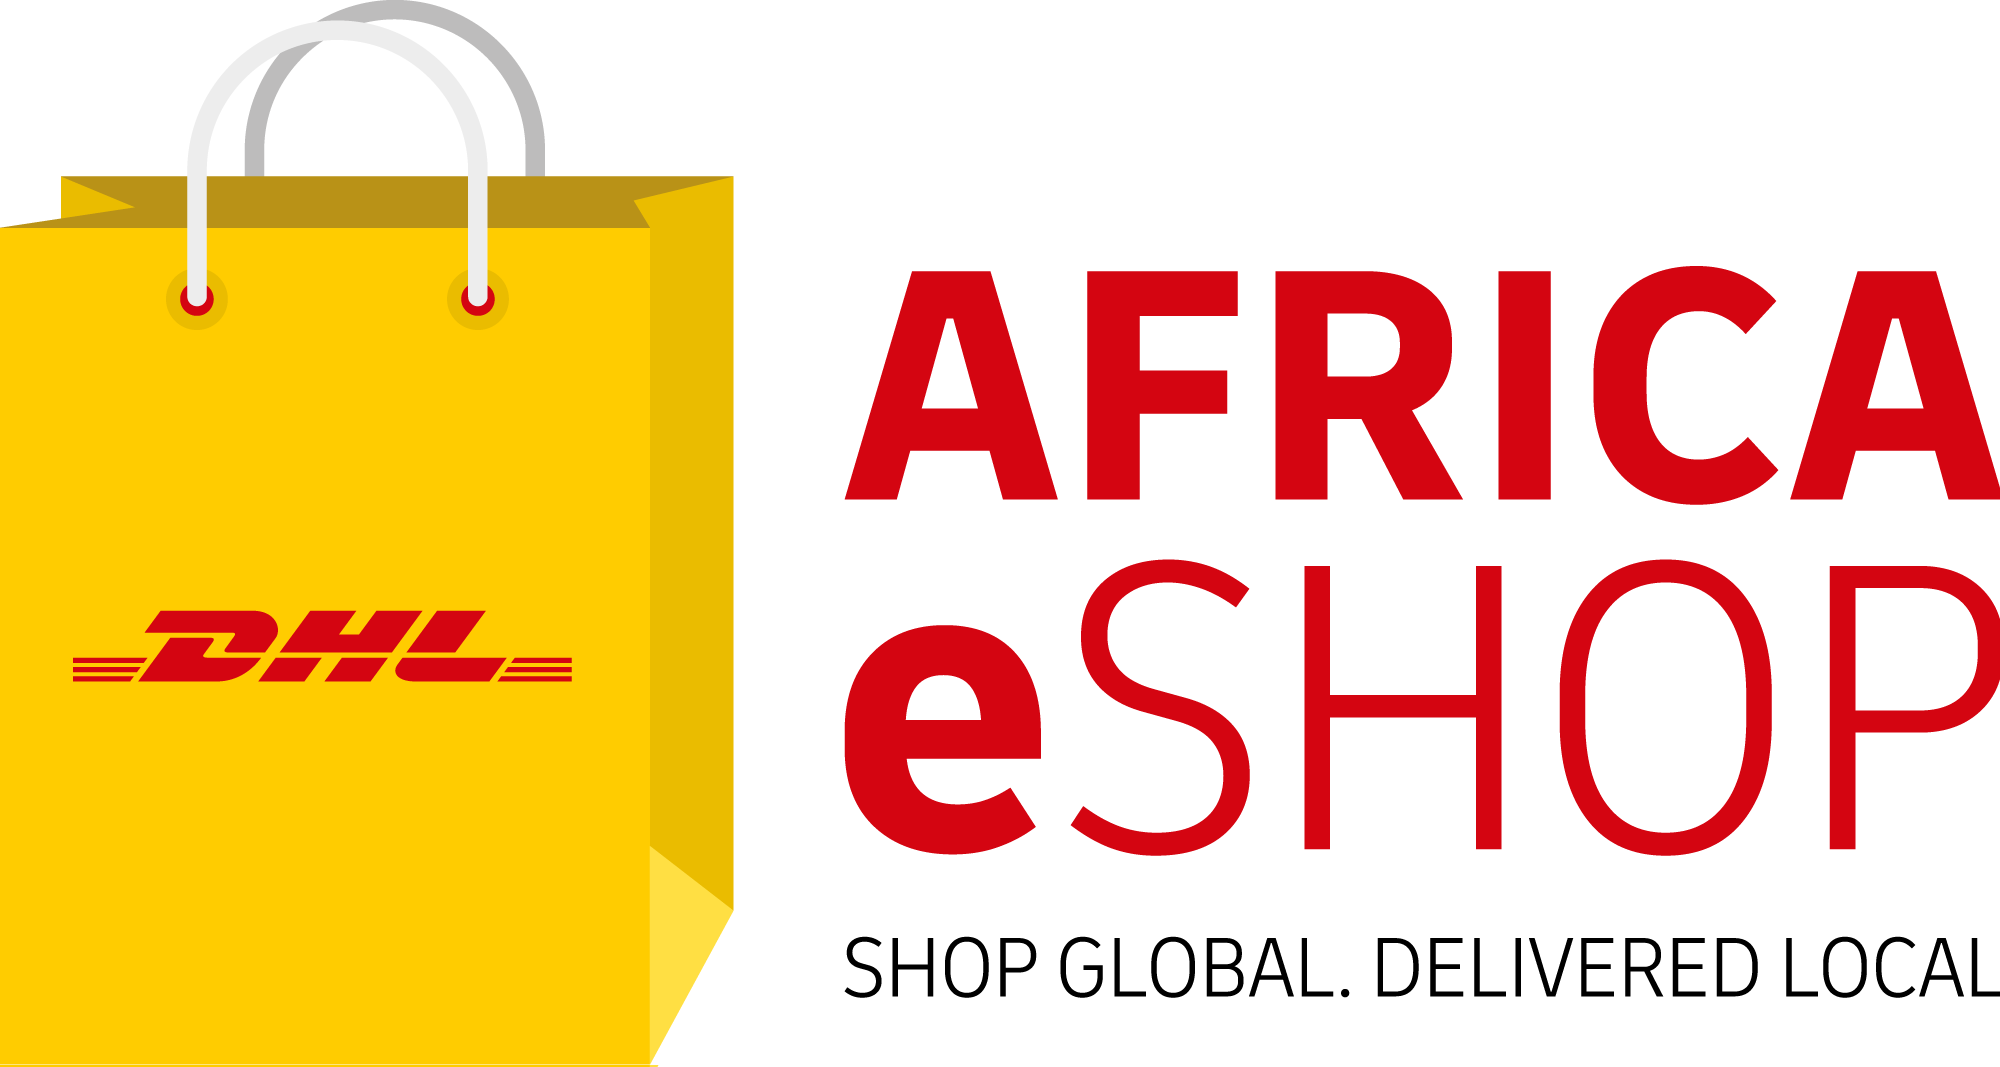 DHL rolls out e-commerce platform to more African markets following initial success